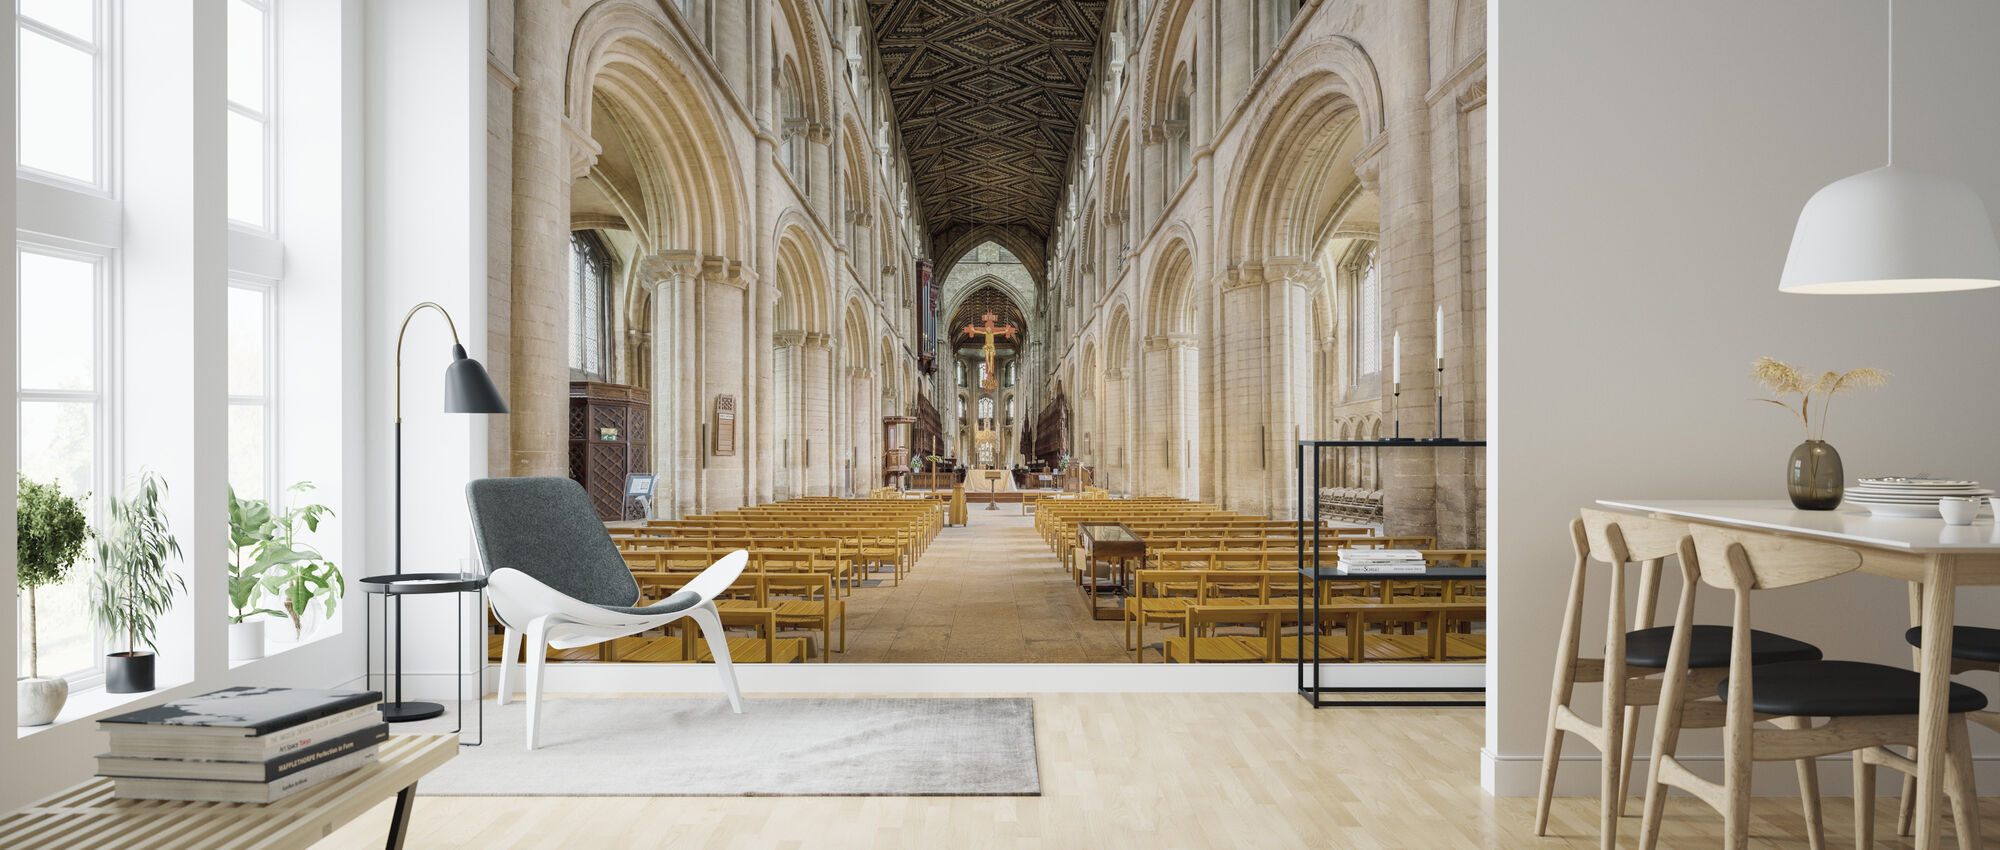 Cathedral Church - Wallpaper - Living Room